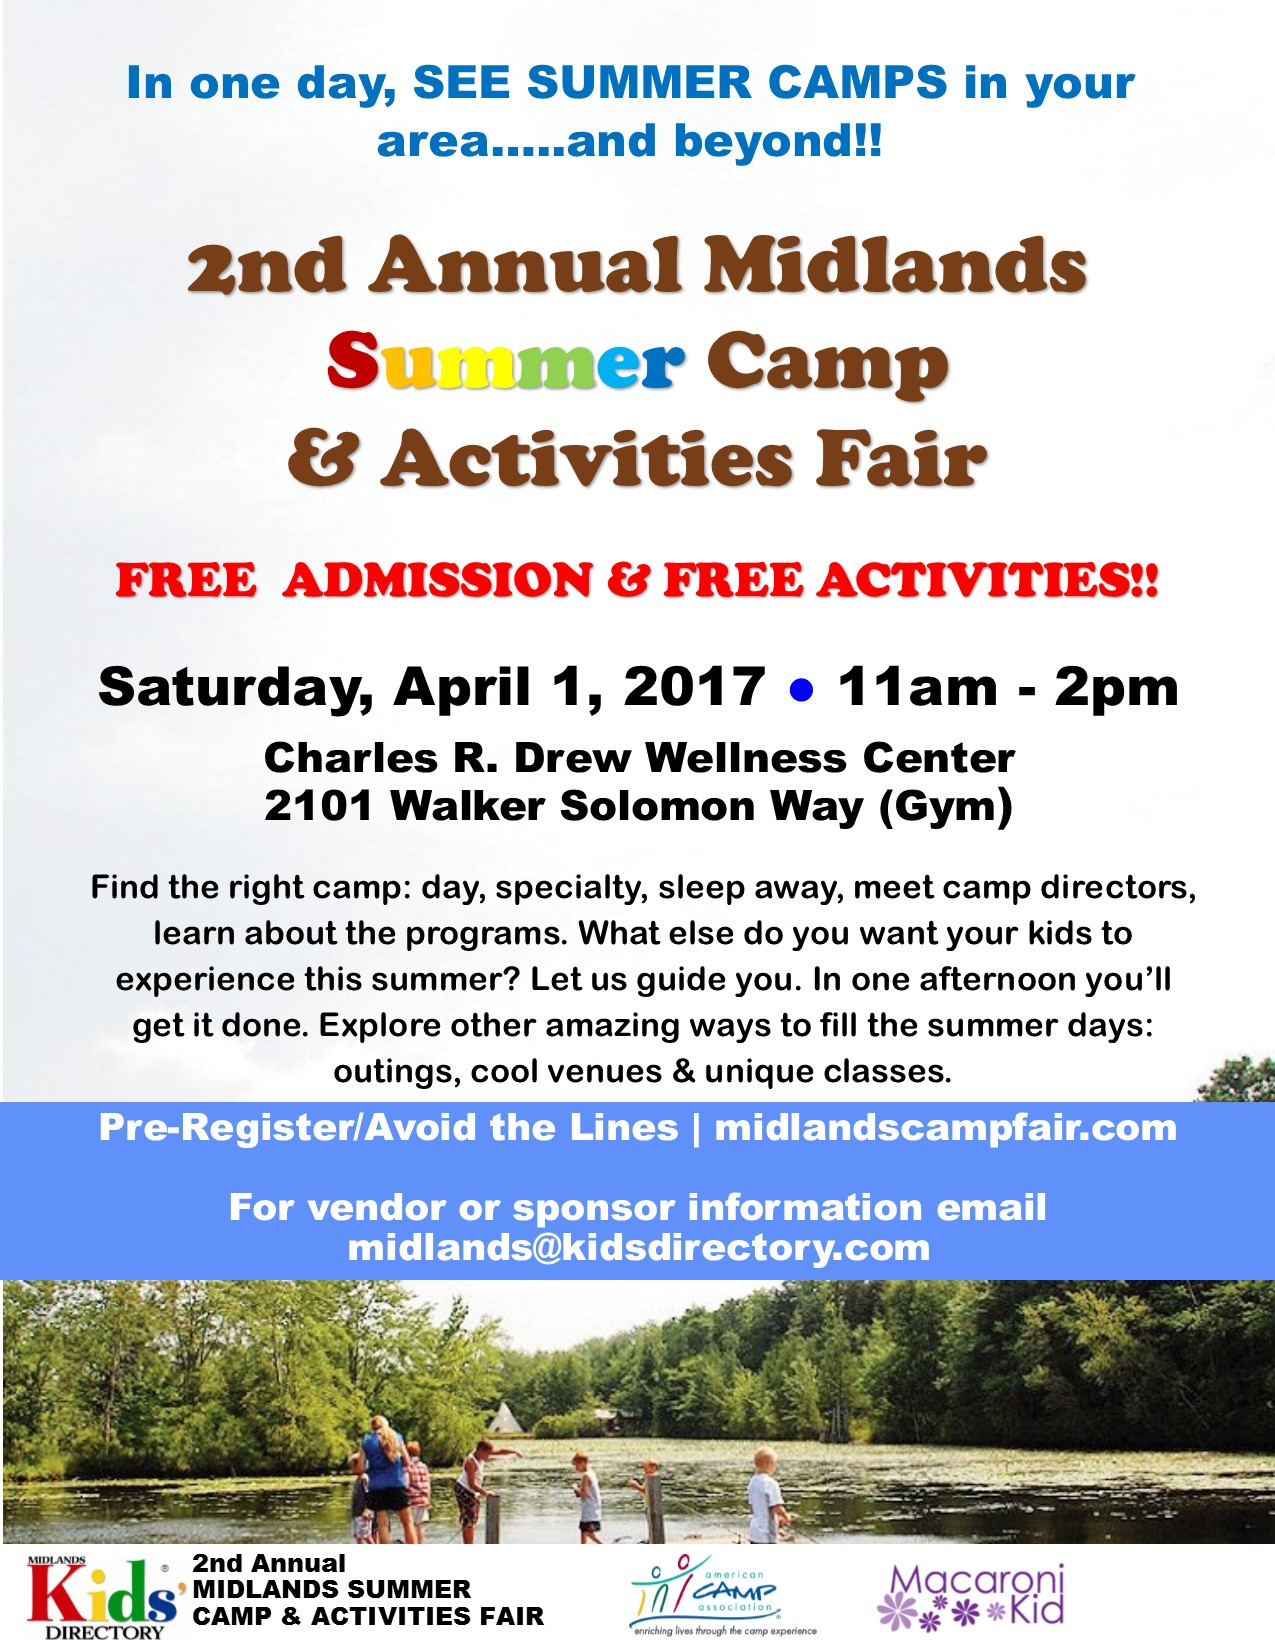 2nd Annual Midlands Summer Camp & Activities Fair